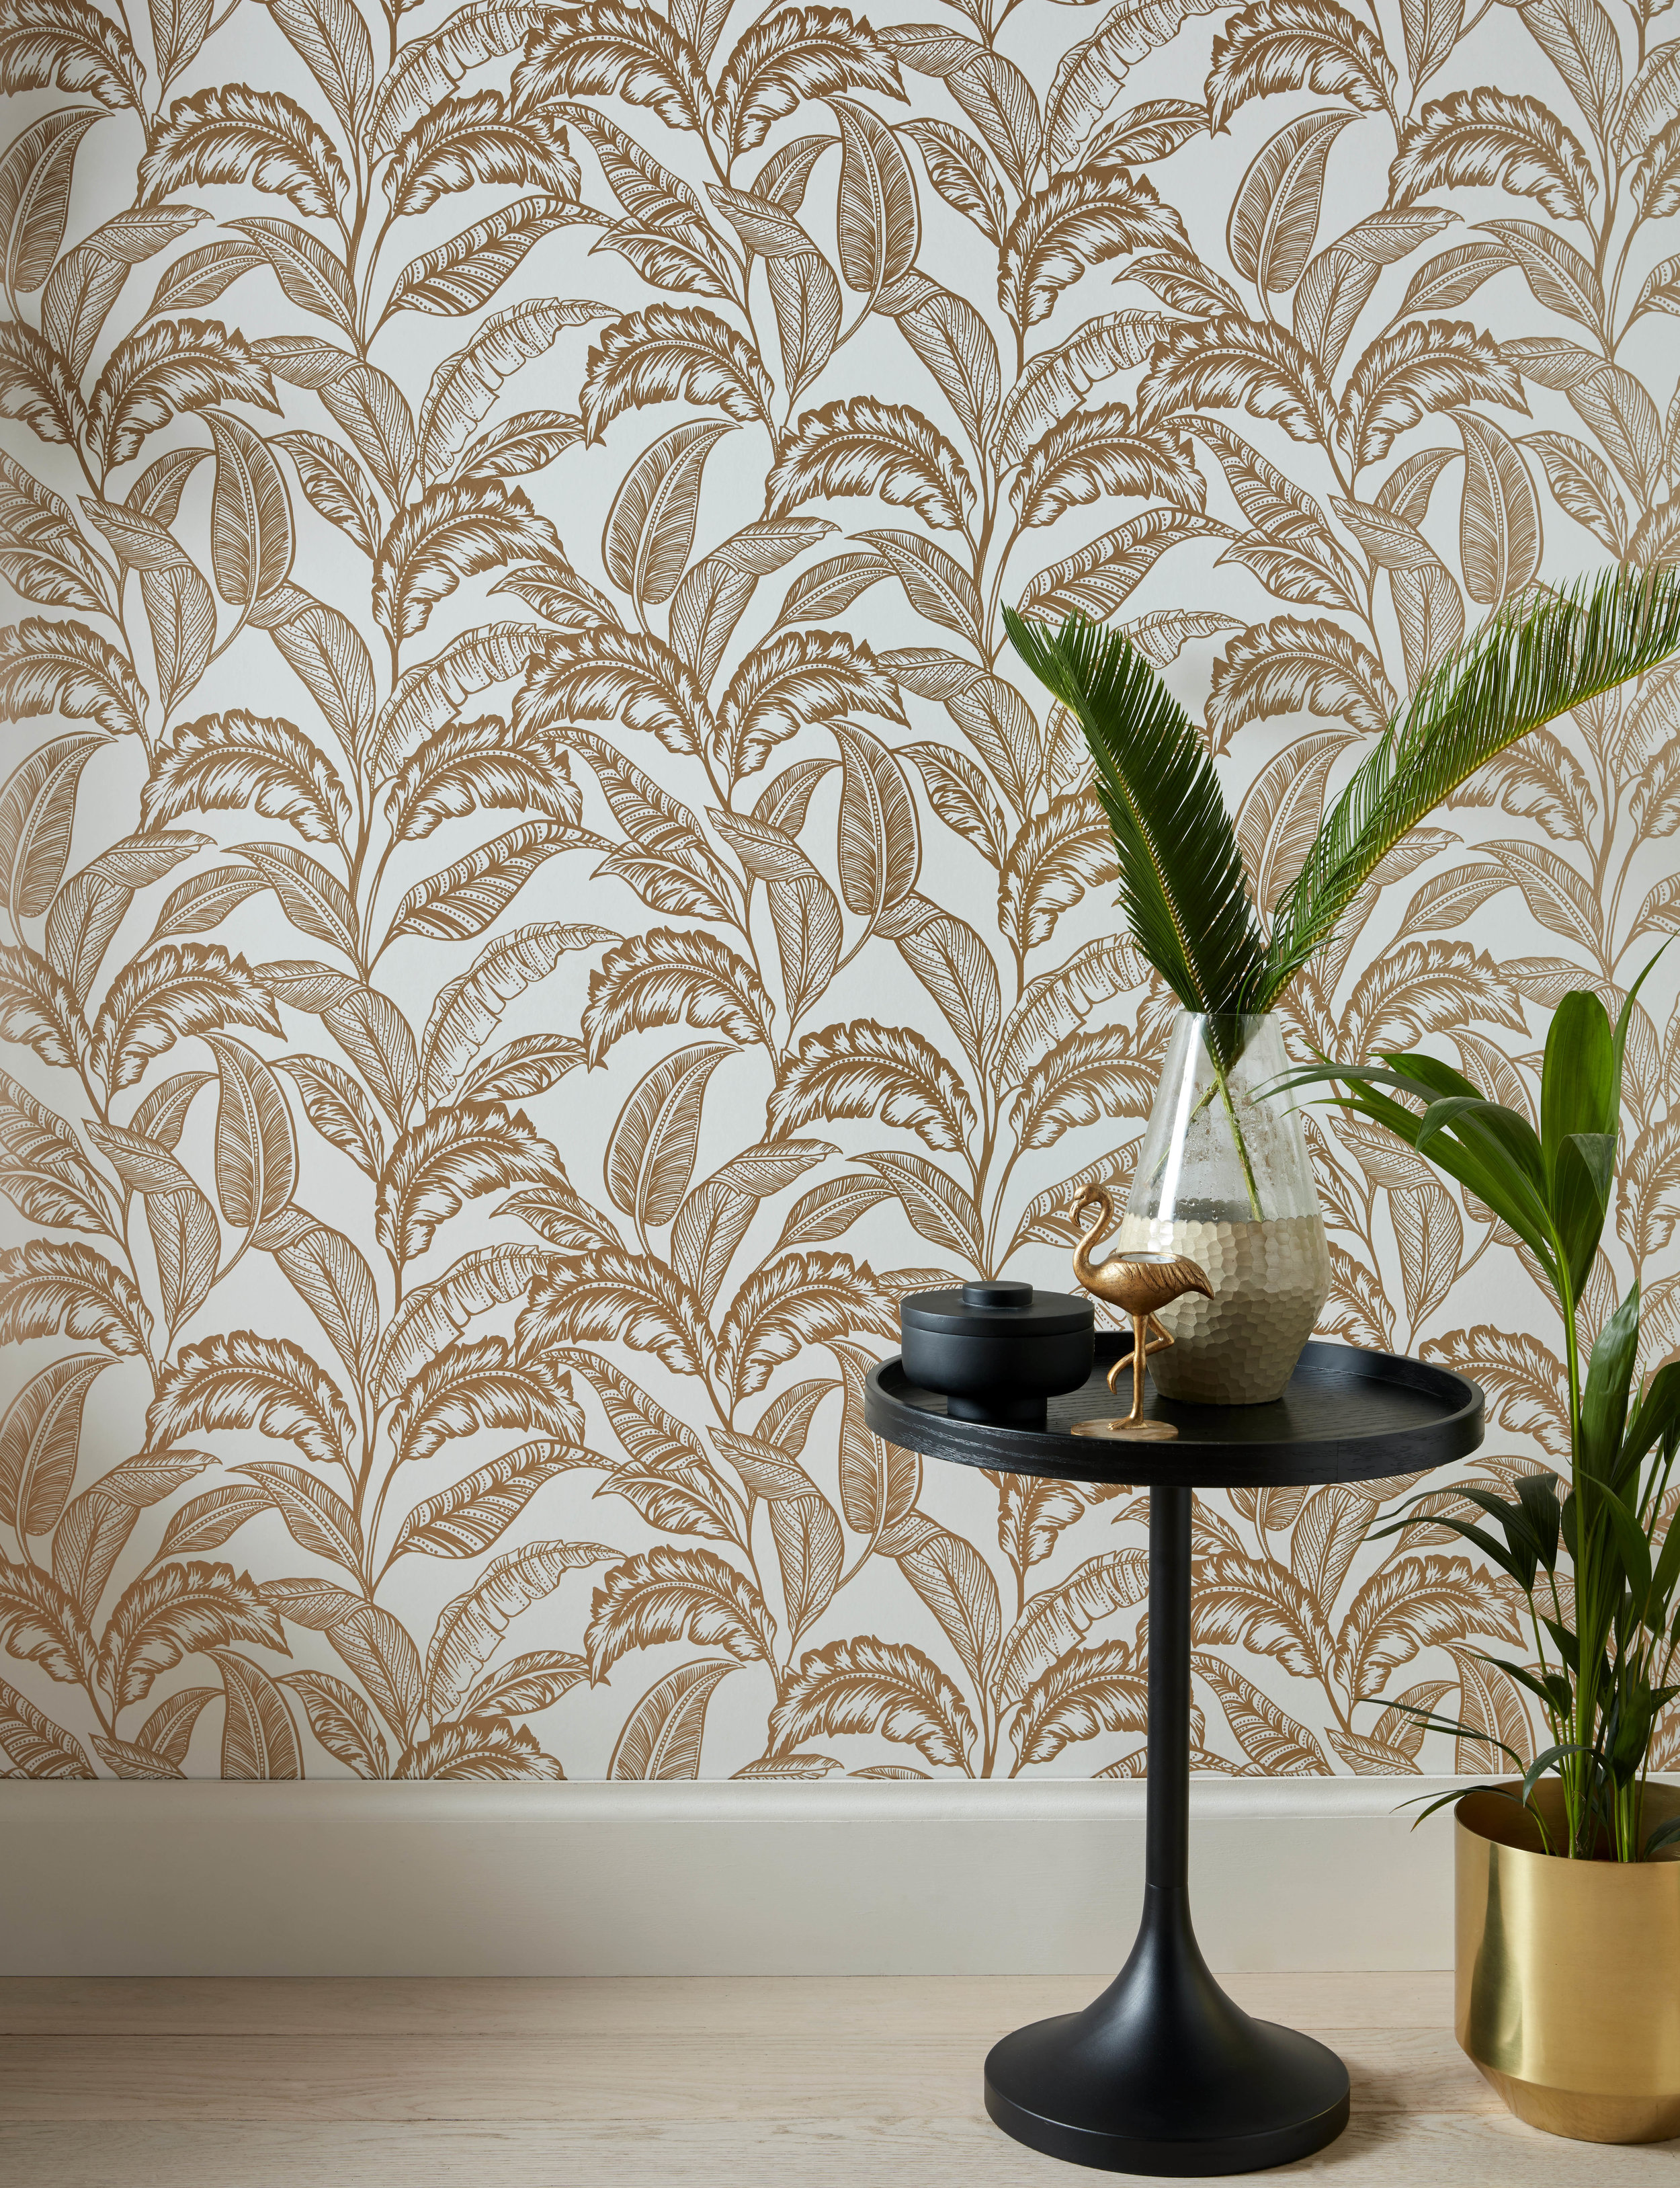 Accessorize Mozambique Wallpaper - Light Cream Gold copy.jpg